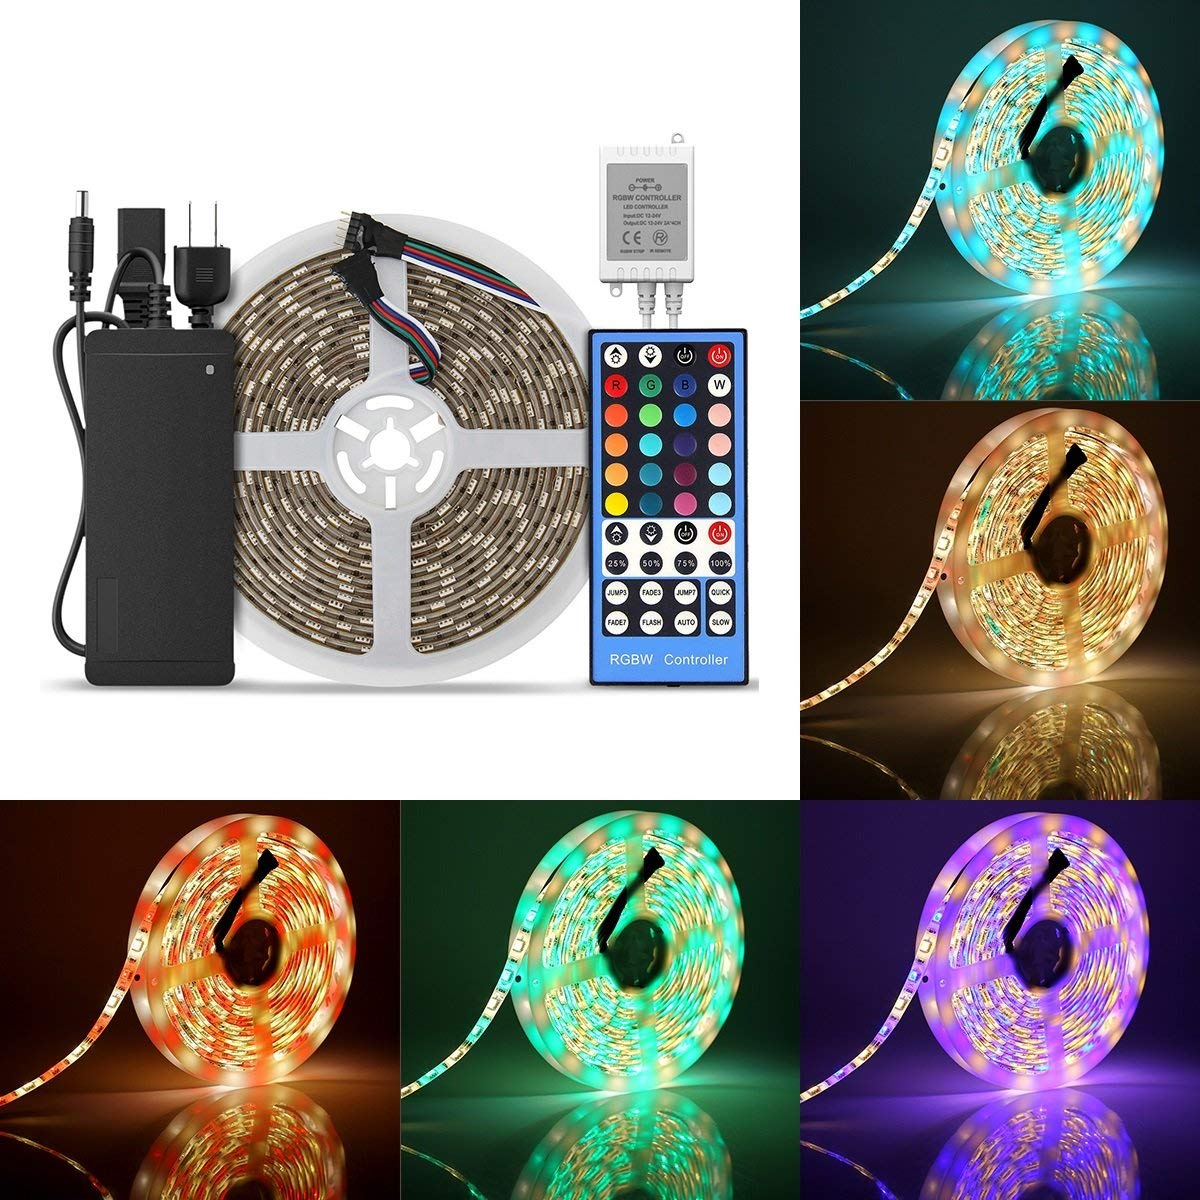 BZONE 5m SMD5050 Multicolor Waterproof LED Strip Lights Flexible LED Lighting Strip Kit 16.4ft RGBWW + 12V 6A 40 Keys Mini Wireless Music IR Remote Controller + Power Supply